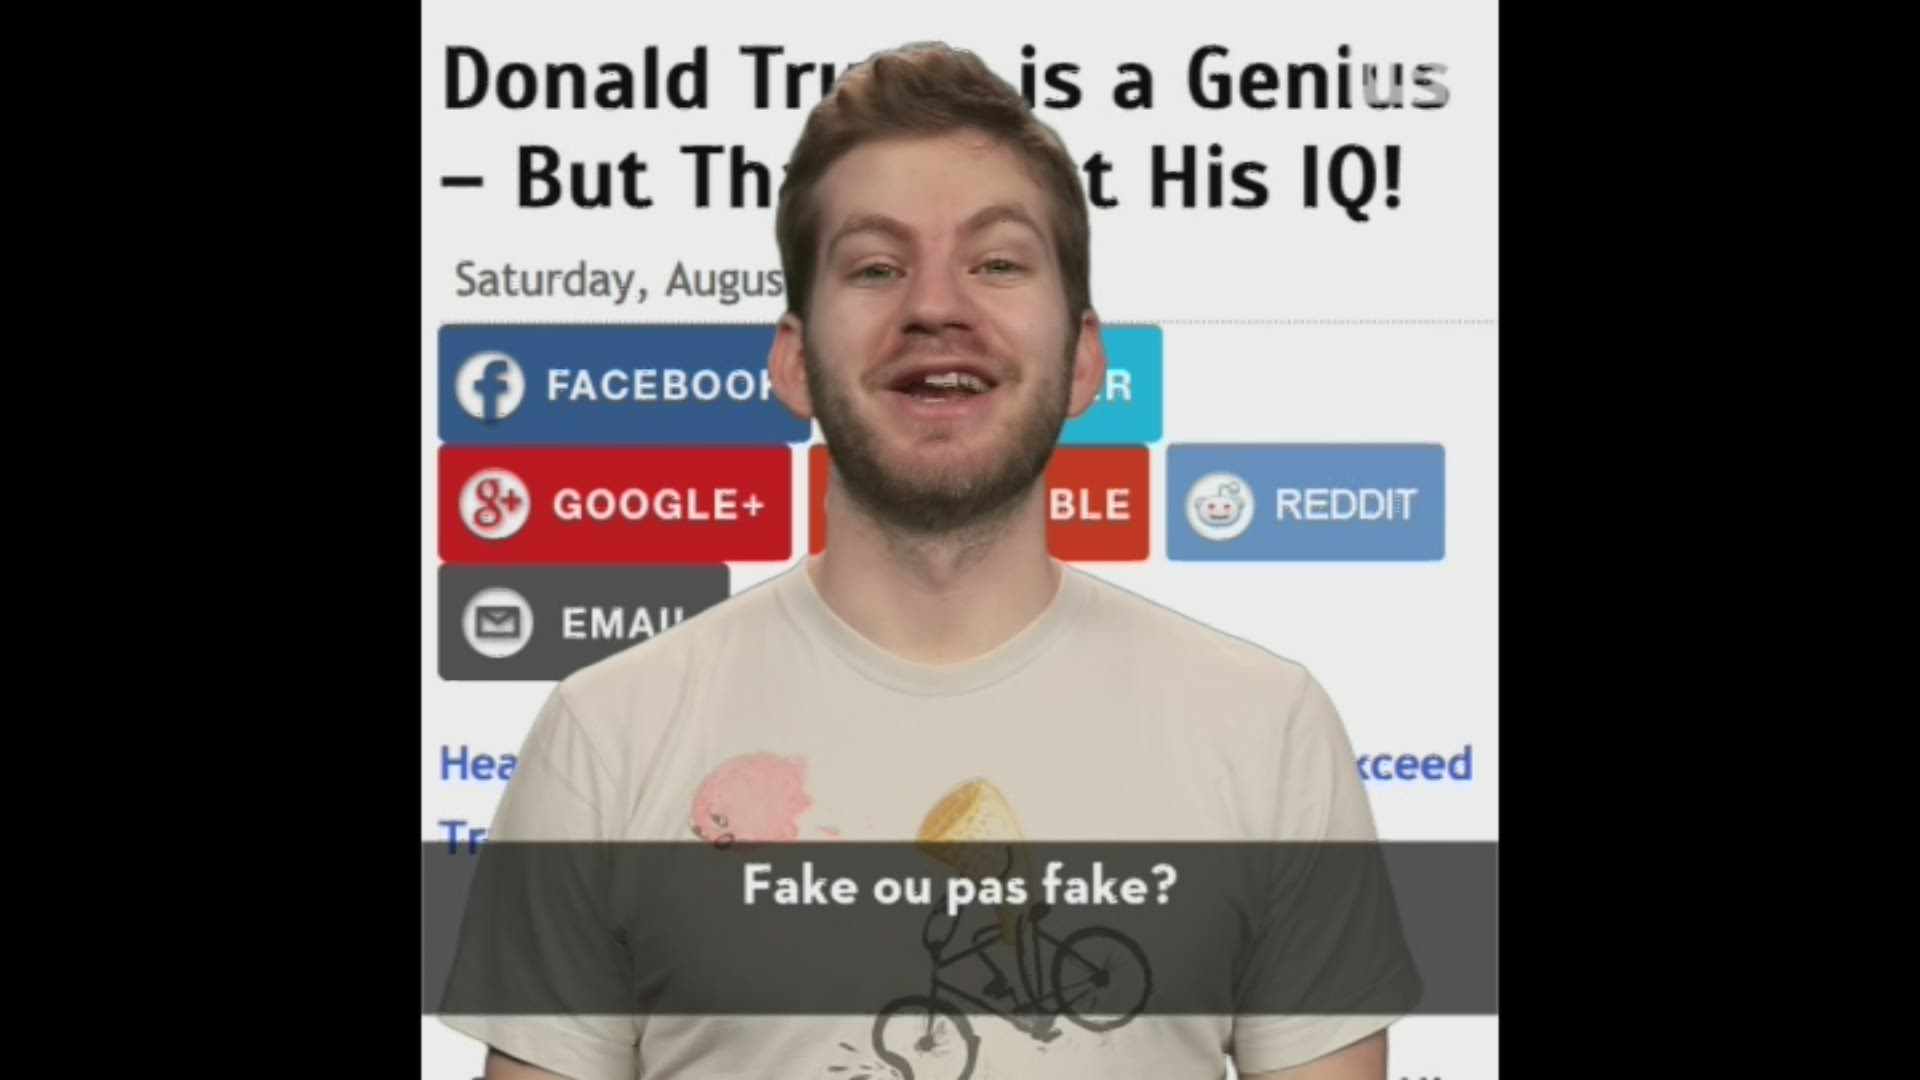 What the Fake: le QI de Donald Trump